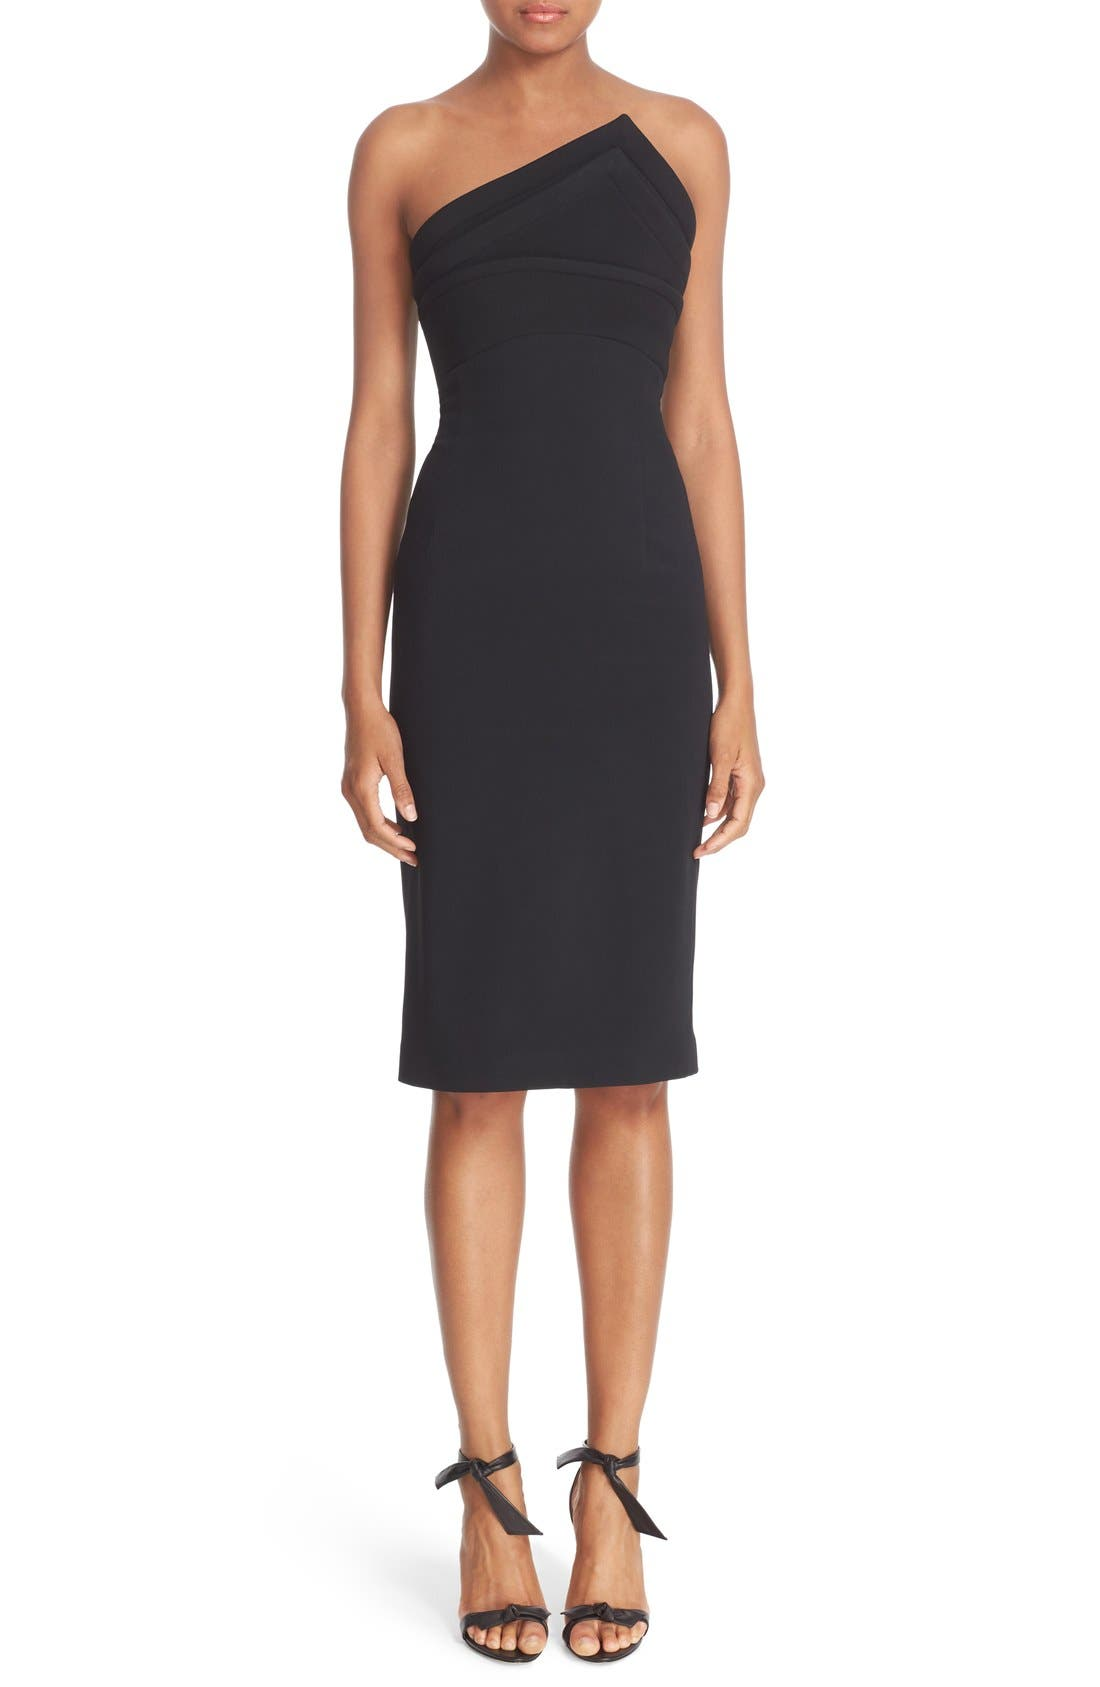 BRANDON MAXWELL 'Cady' Triangular Neck Strapless Crepe Sheath